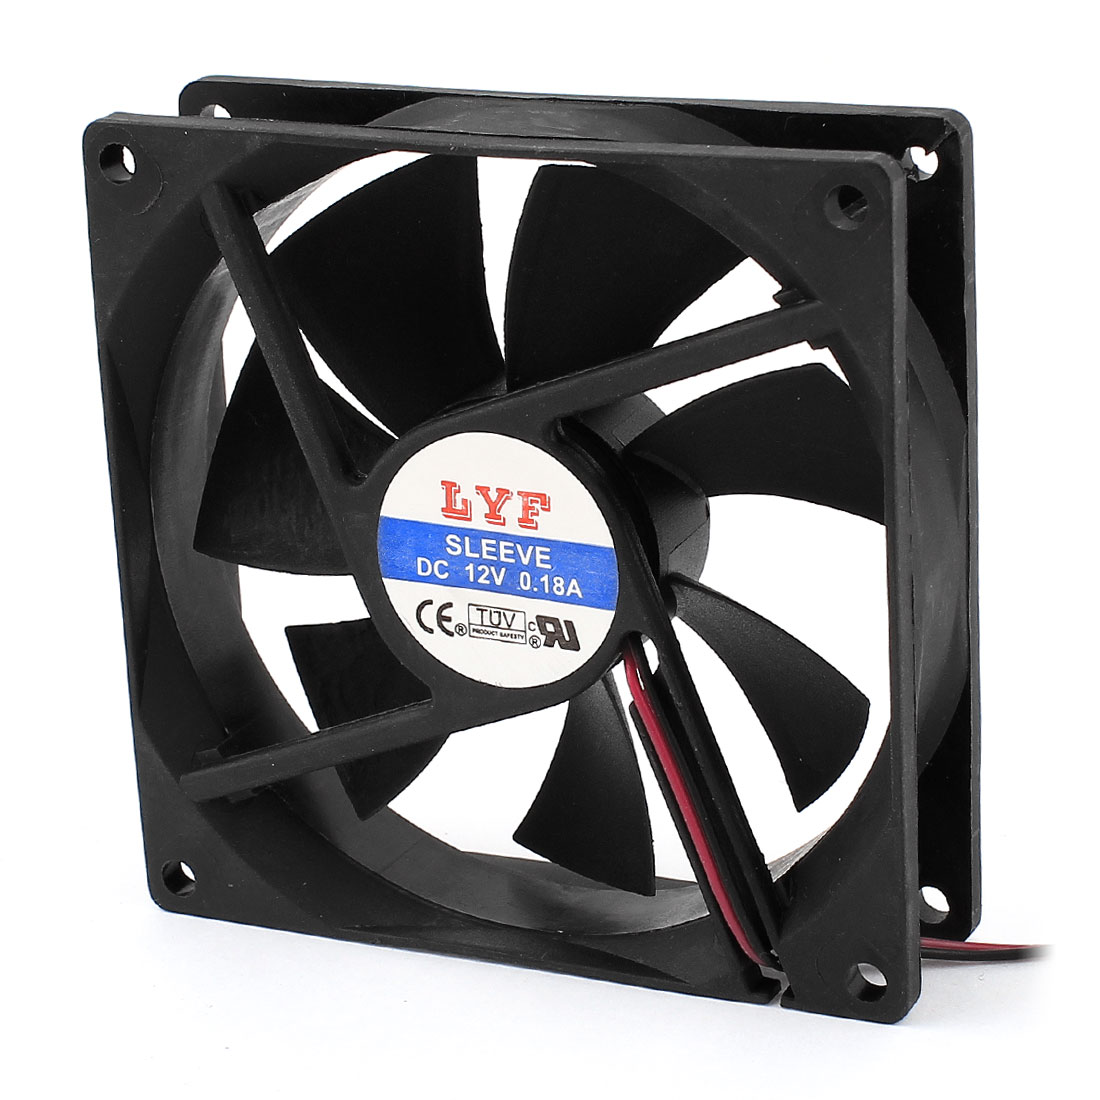 DC 24V 0.18A 92mmx25mm Sleeve Bearing Computer Case CPU Cooler Cooling Fan Black